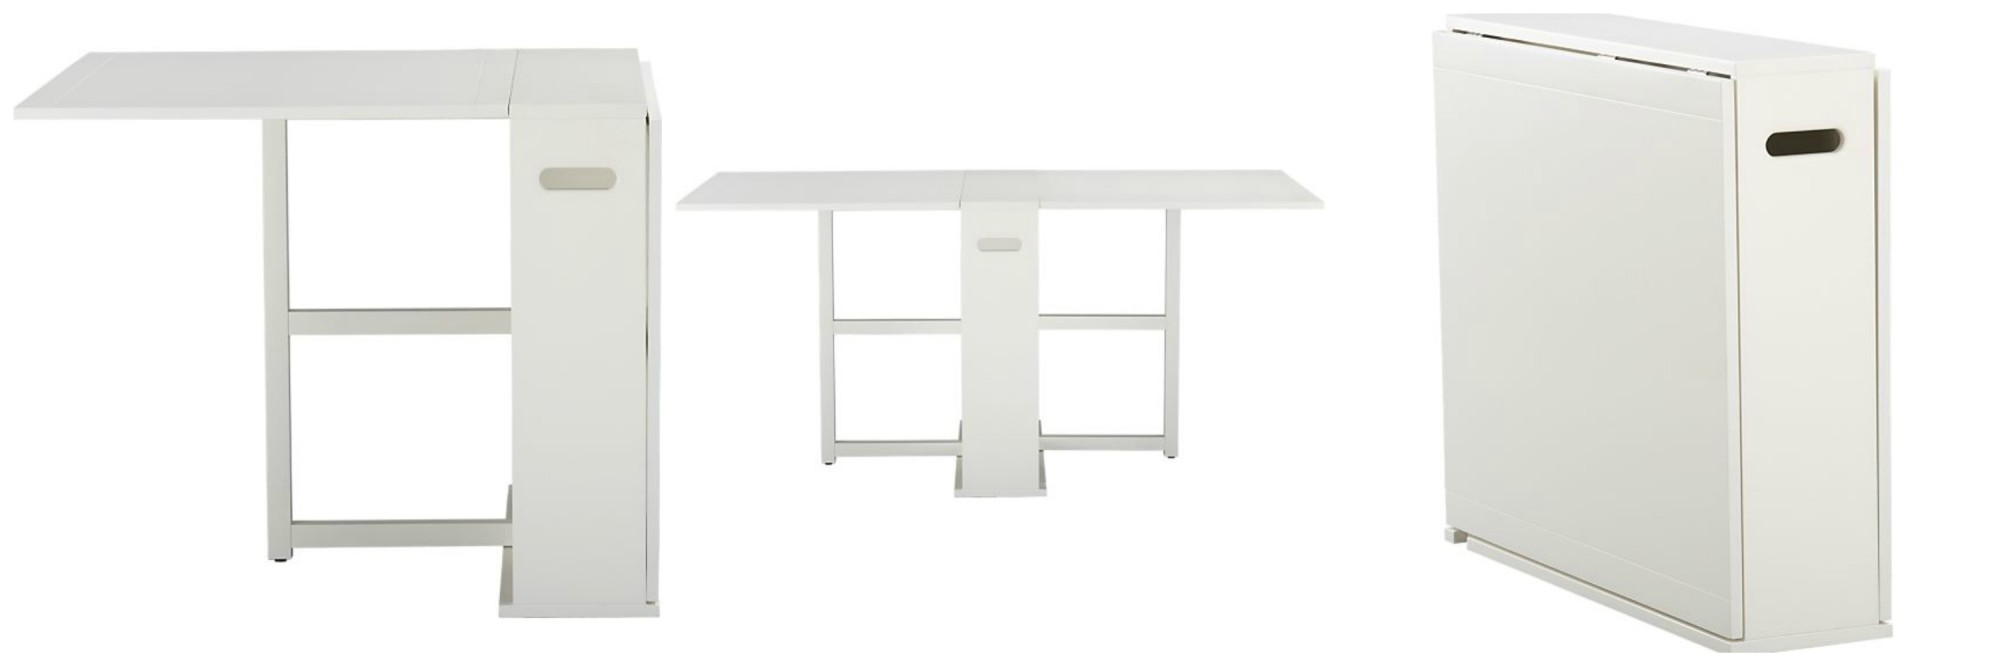 Crate And Barrel Span Gateleg Dining Table Decor Look Alikes